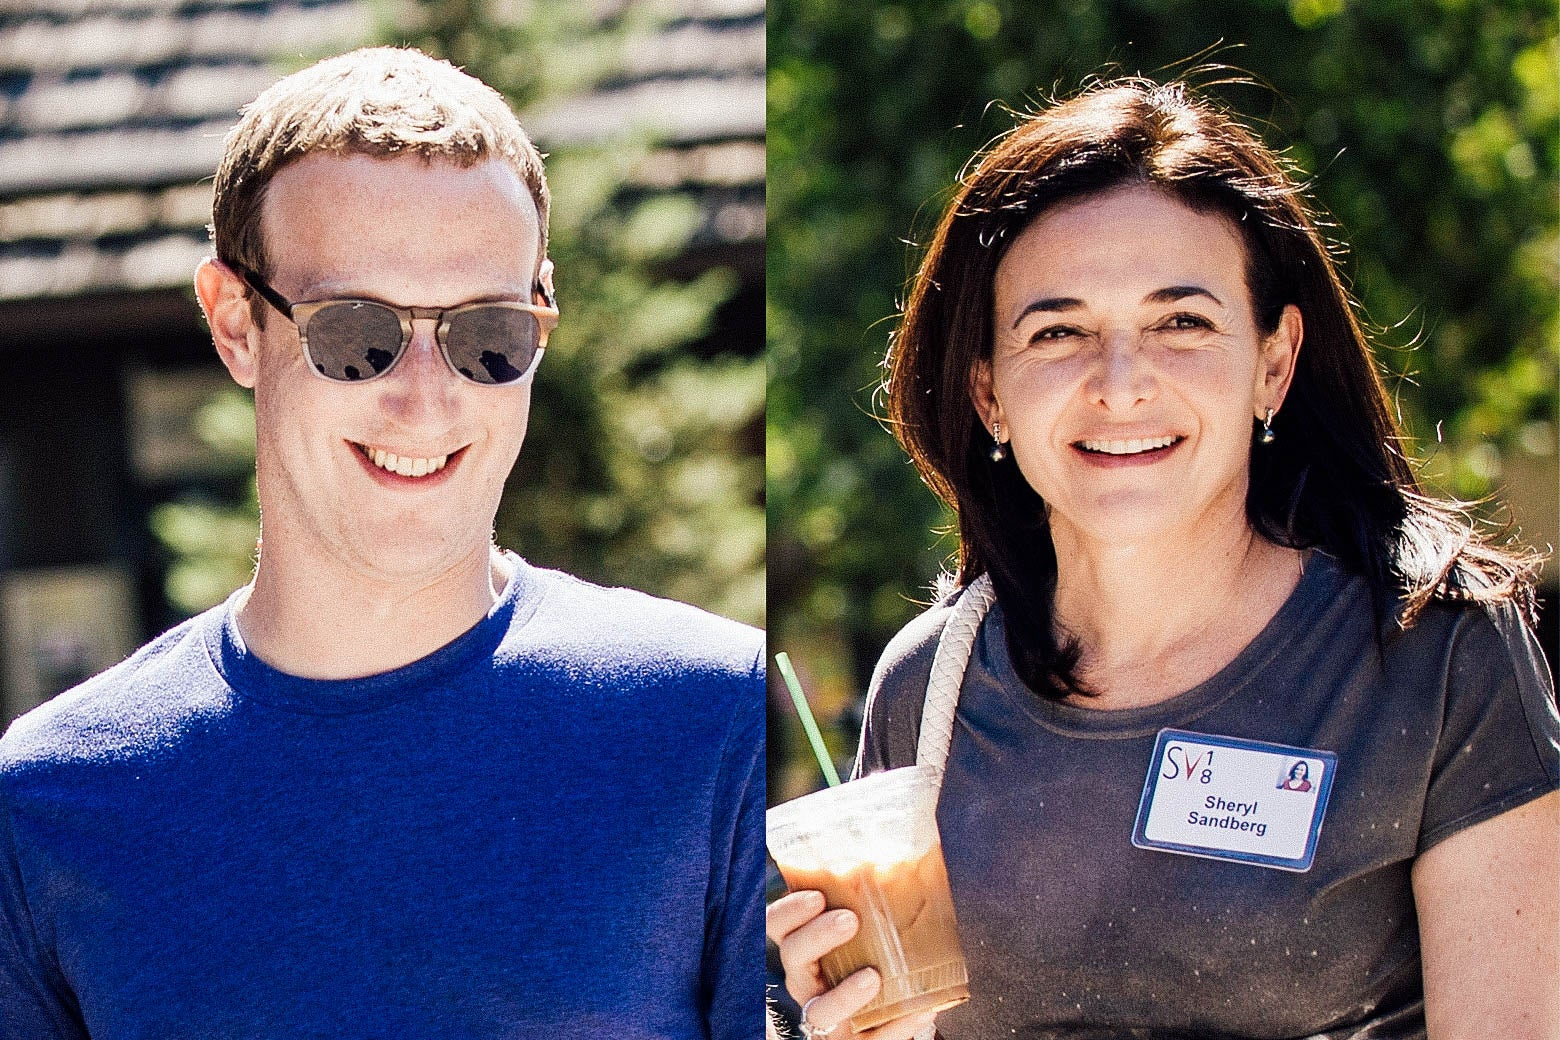 Mark Zuckerberg and Sheryl Sandberg, smiling, because they have reasons to smile this week.